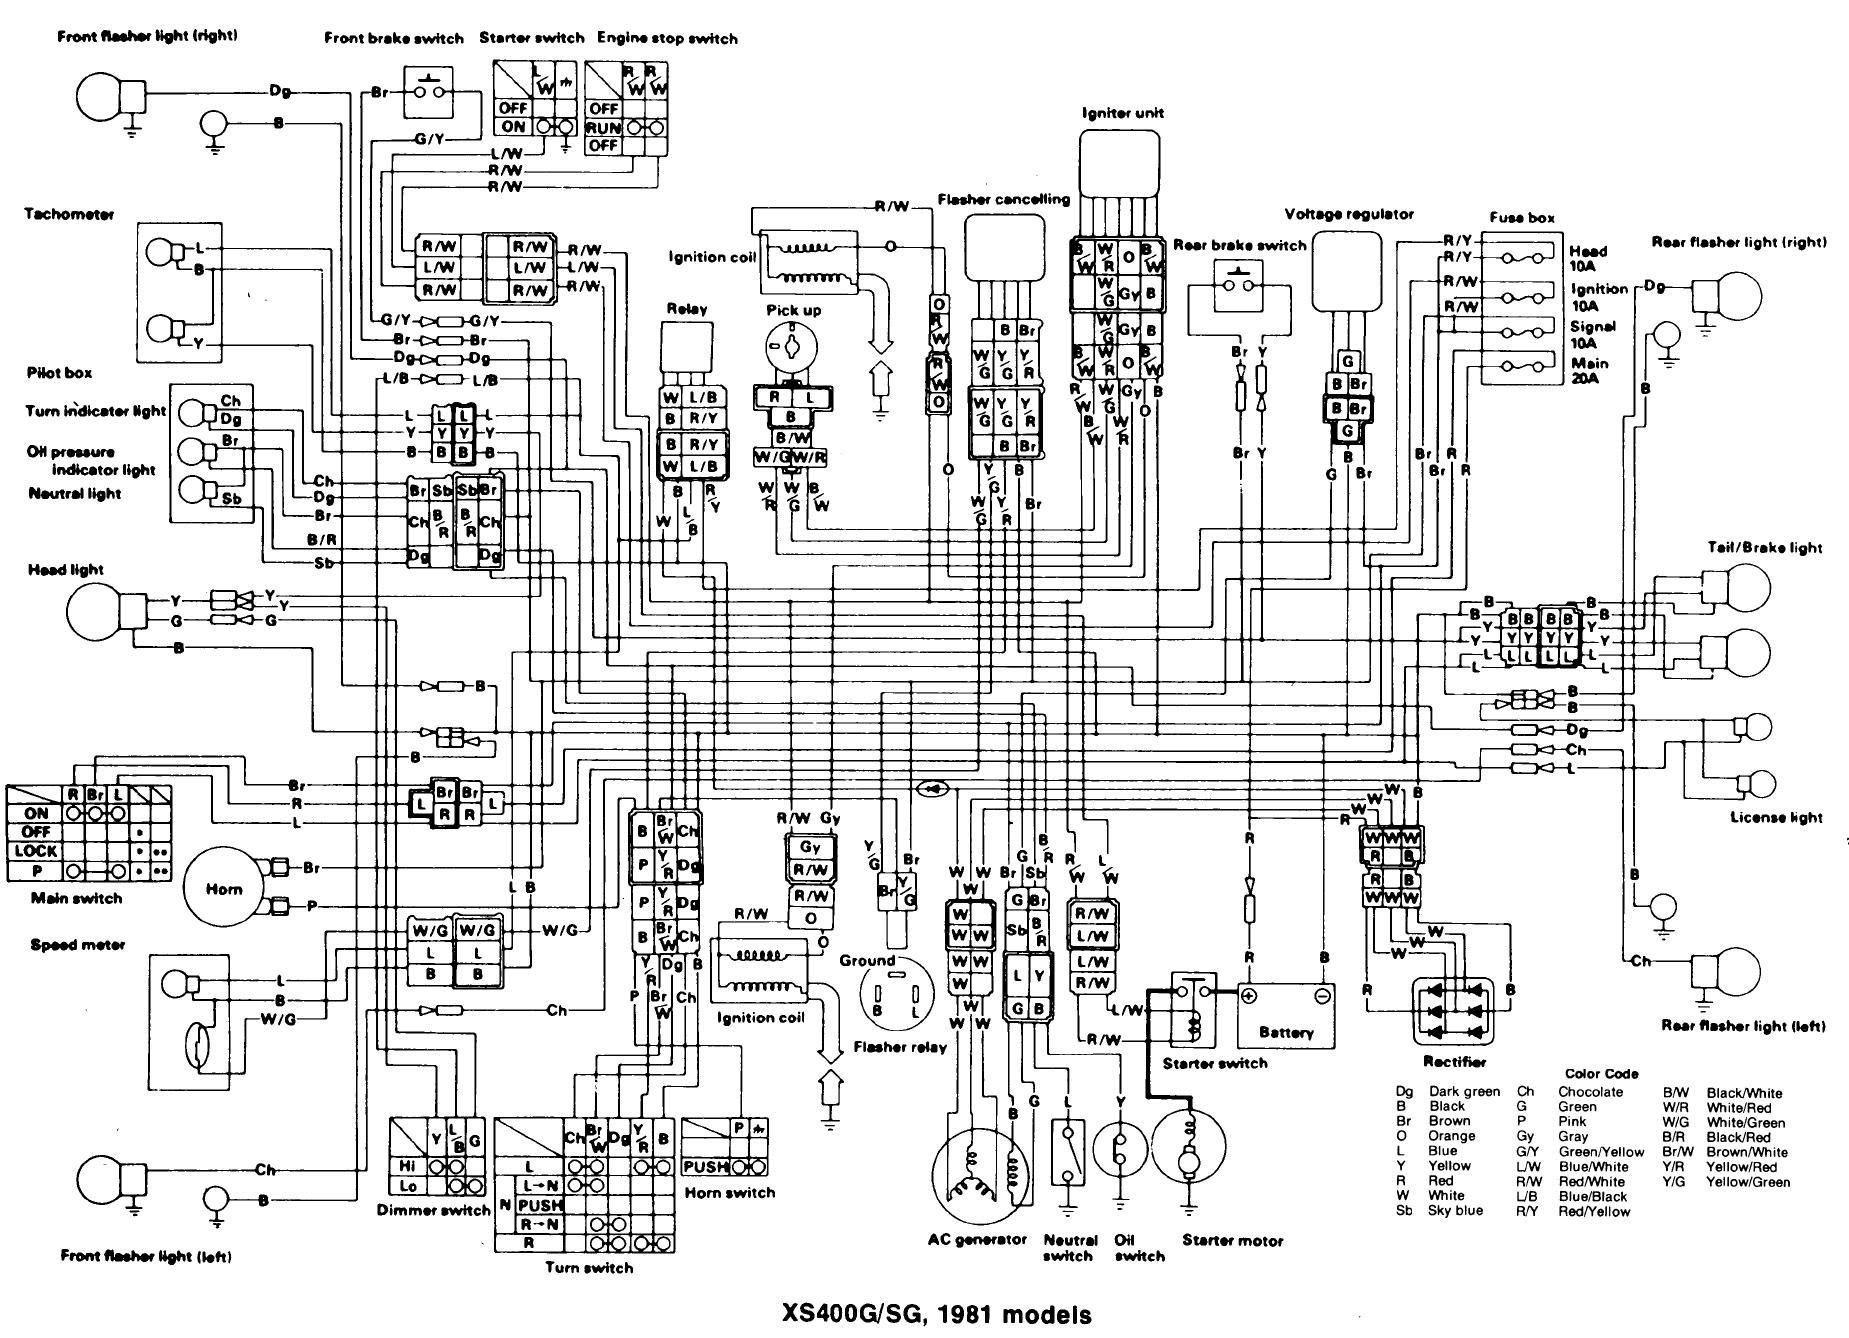 john deere 332 voltage regulator wiring diagram